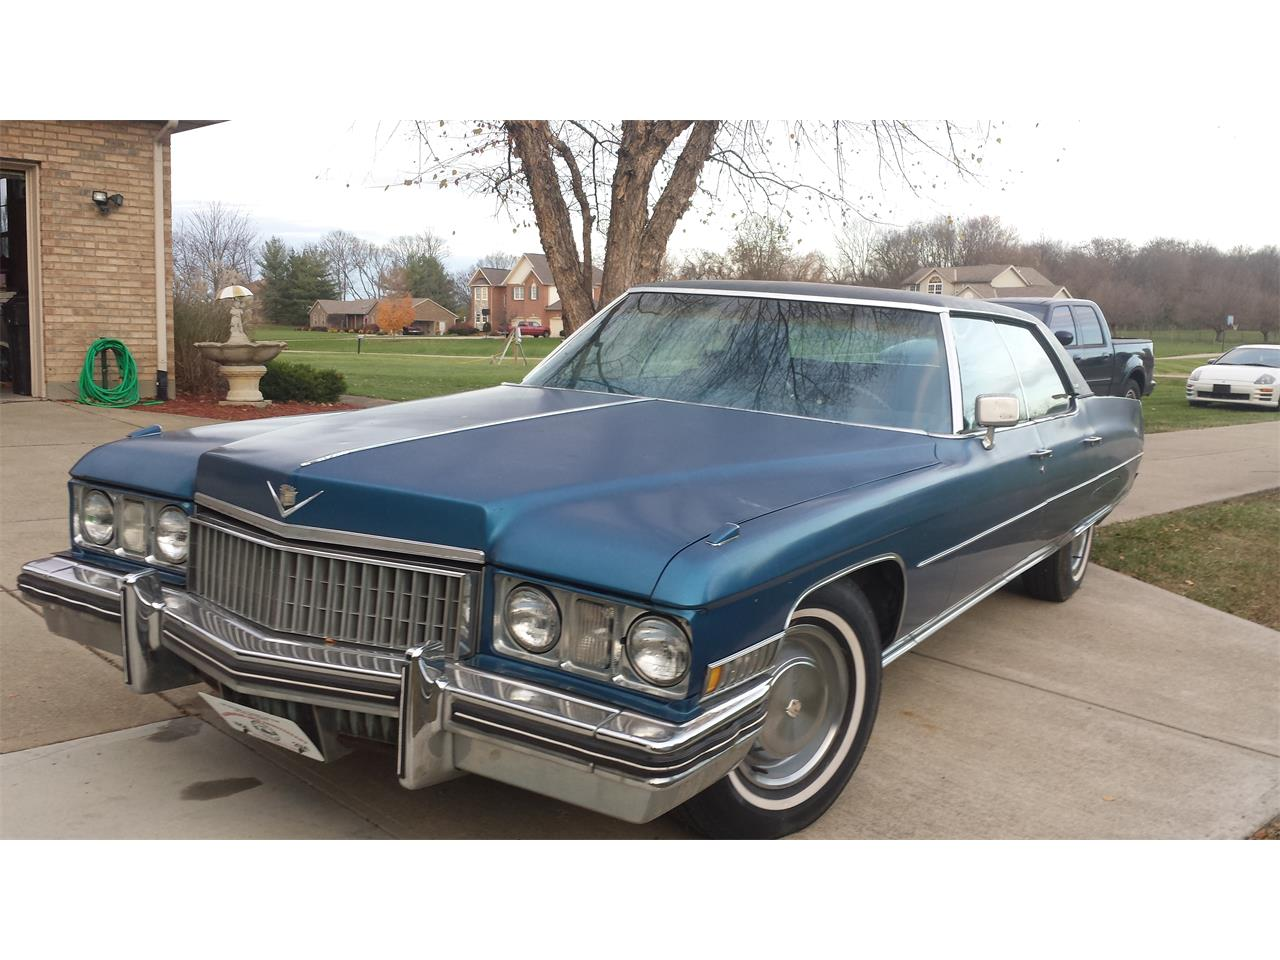 Large Picture of 1973 Cadillac DeVille located in Ohio - $5,500.00 - BYGT